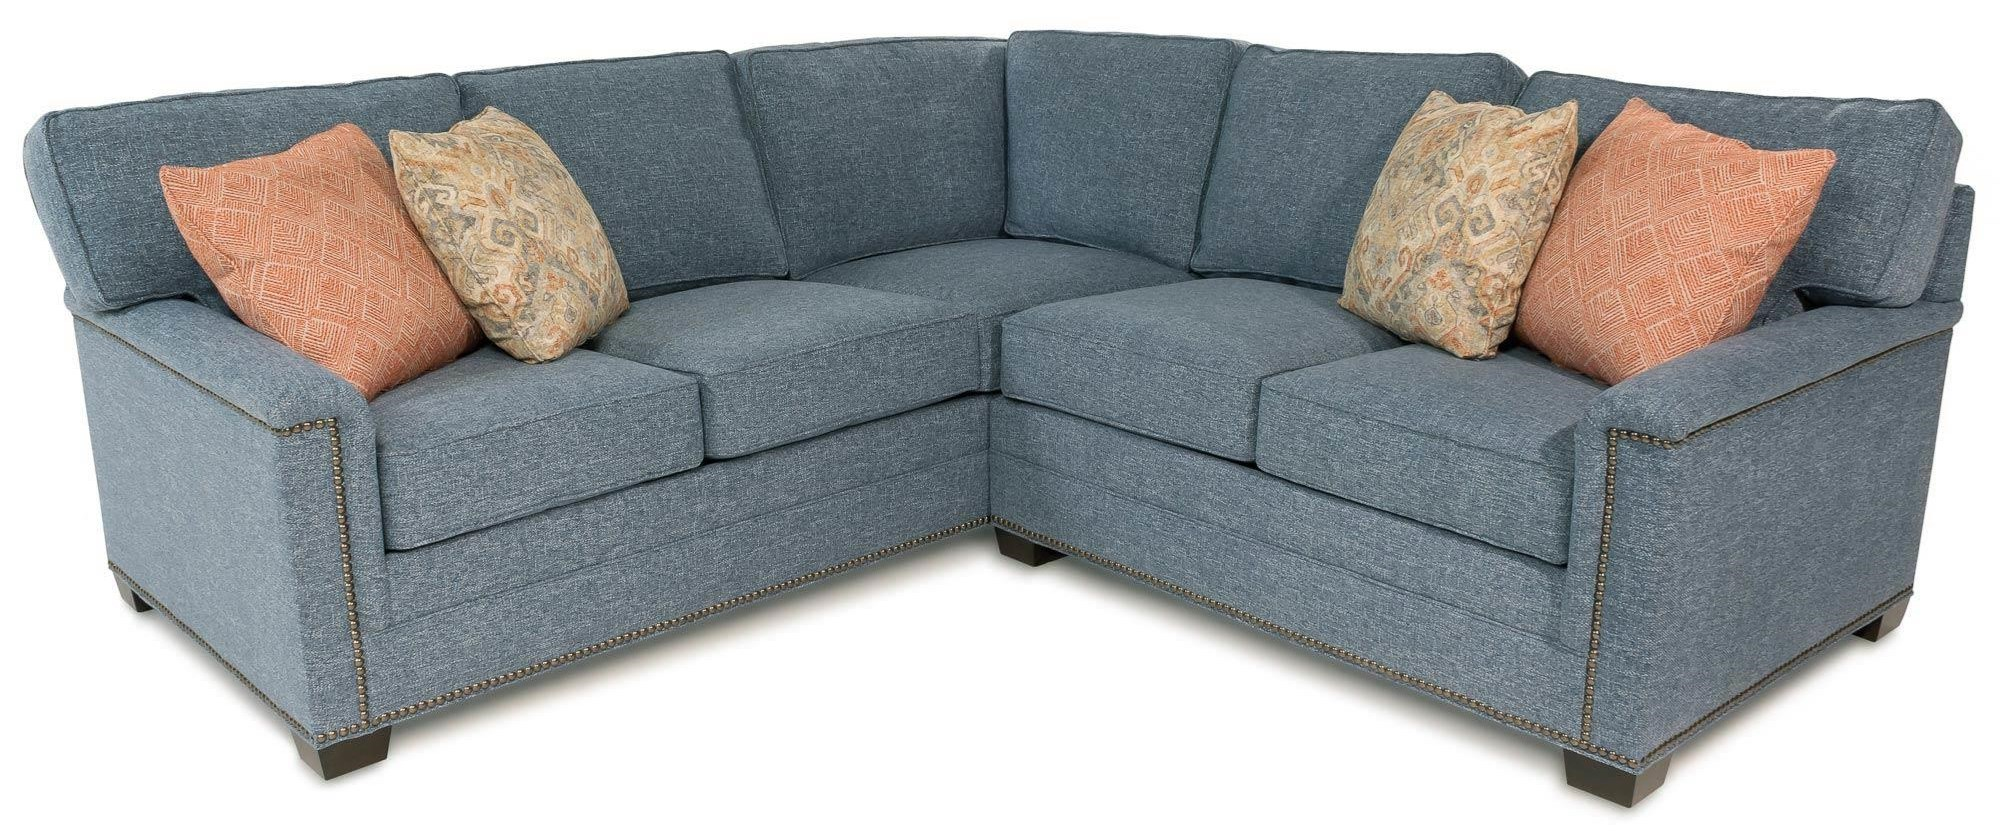 Cassidy 2PC Sectional Sofa W/ Nailhead Trim Detailing By Huntington House  At Rotmans